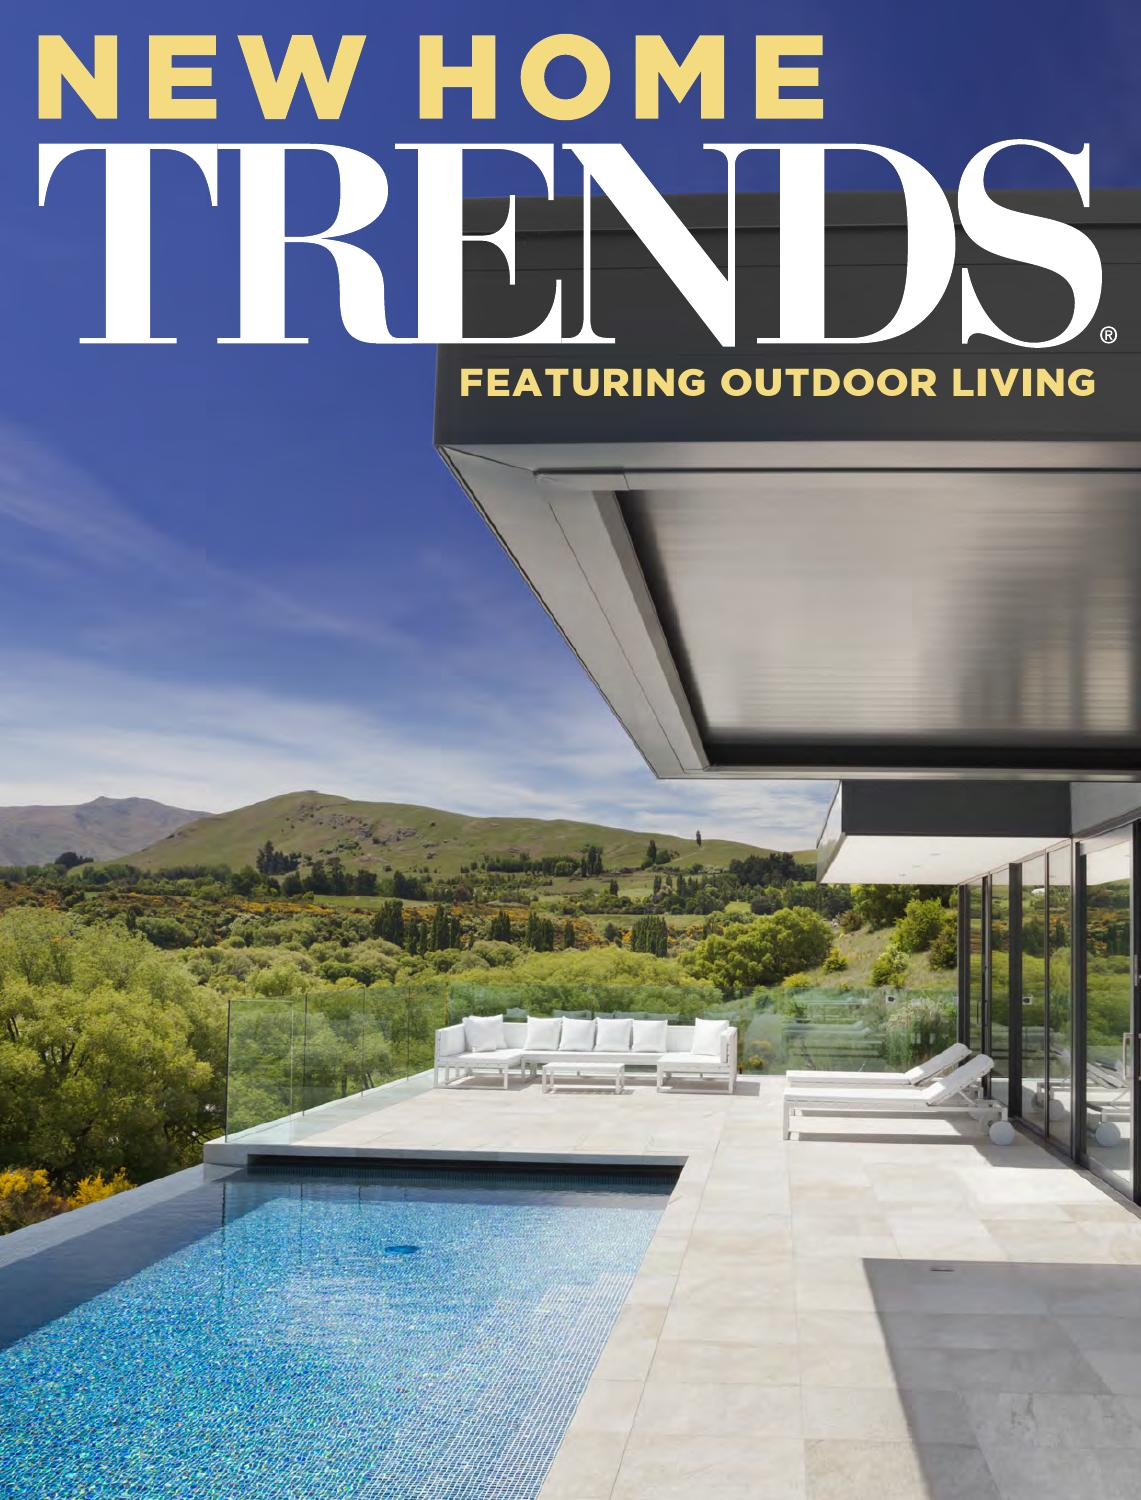 Home And Architectural Trends Magazine new home trends new zealand vol 30/01trendsideas - issuu